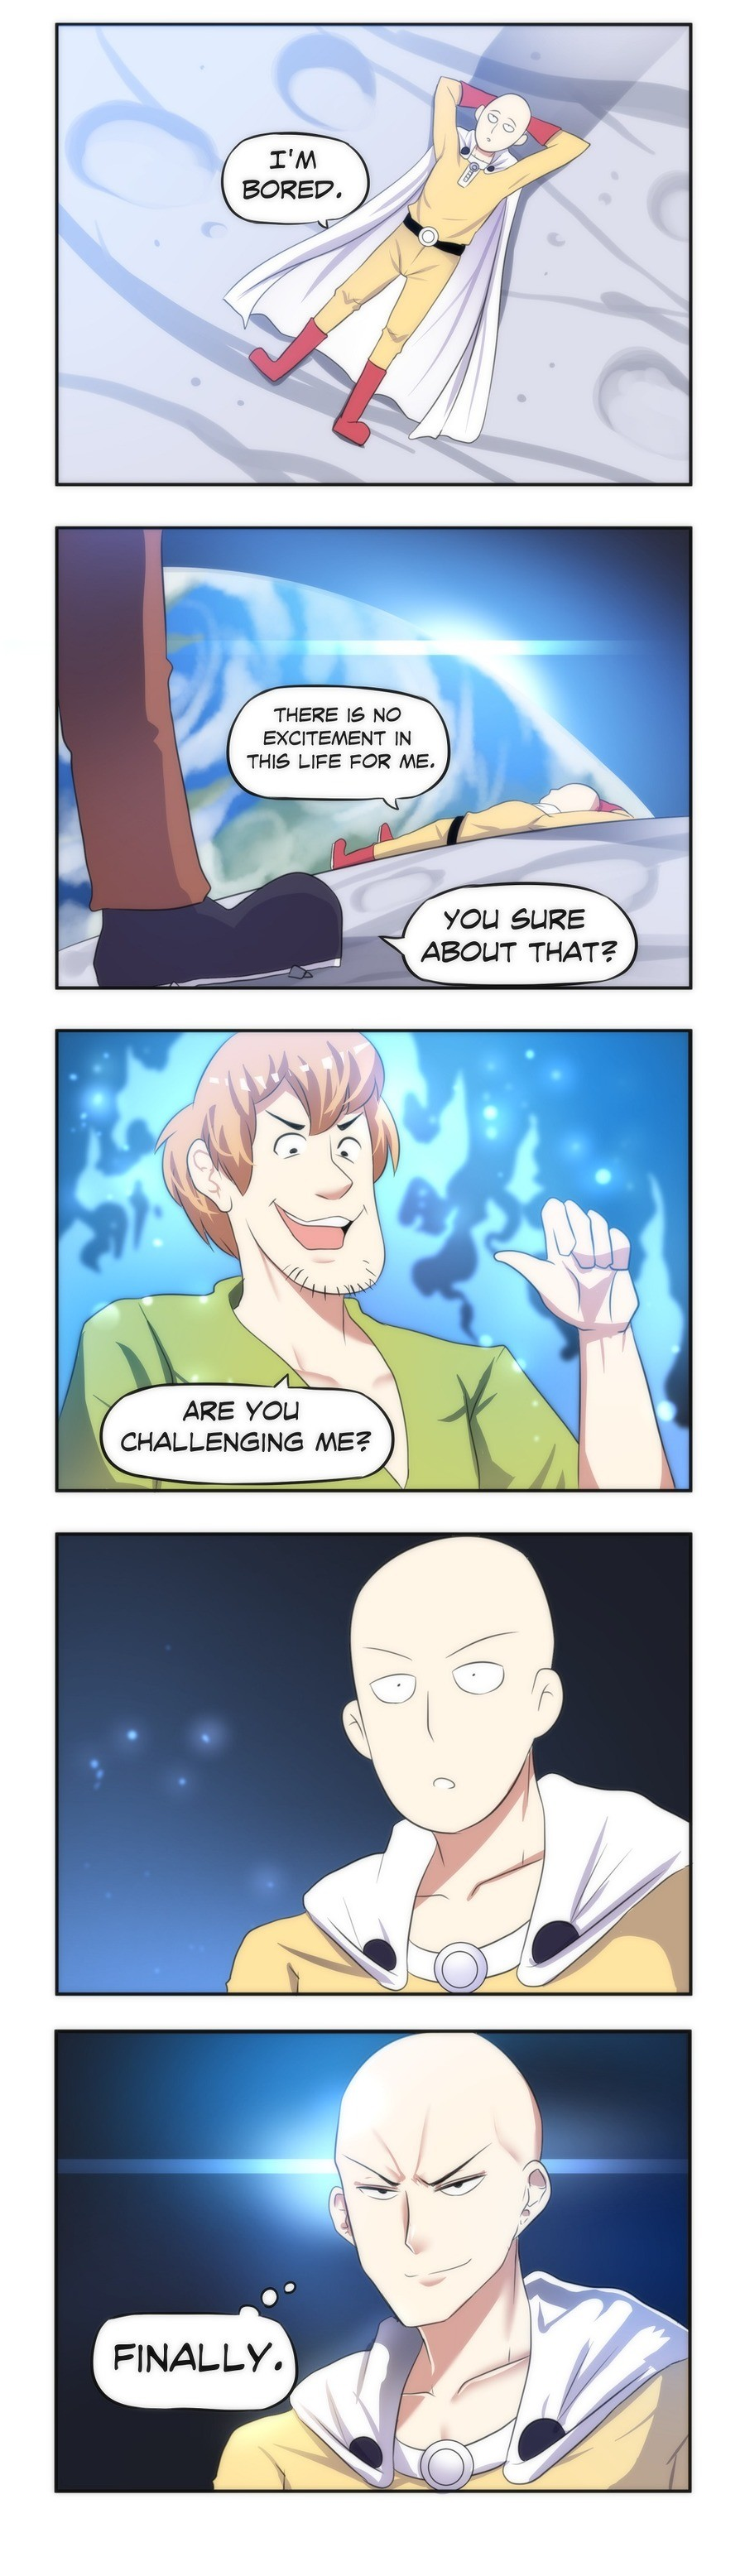 One Punch Man's Final Battle. join list: MerryweatherComics (3107 subs)Mention History.. >Both of them use 10% of their power >Universe implodes